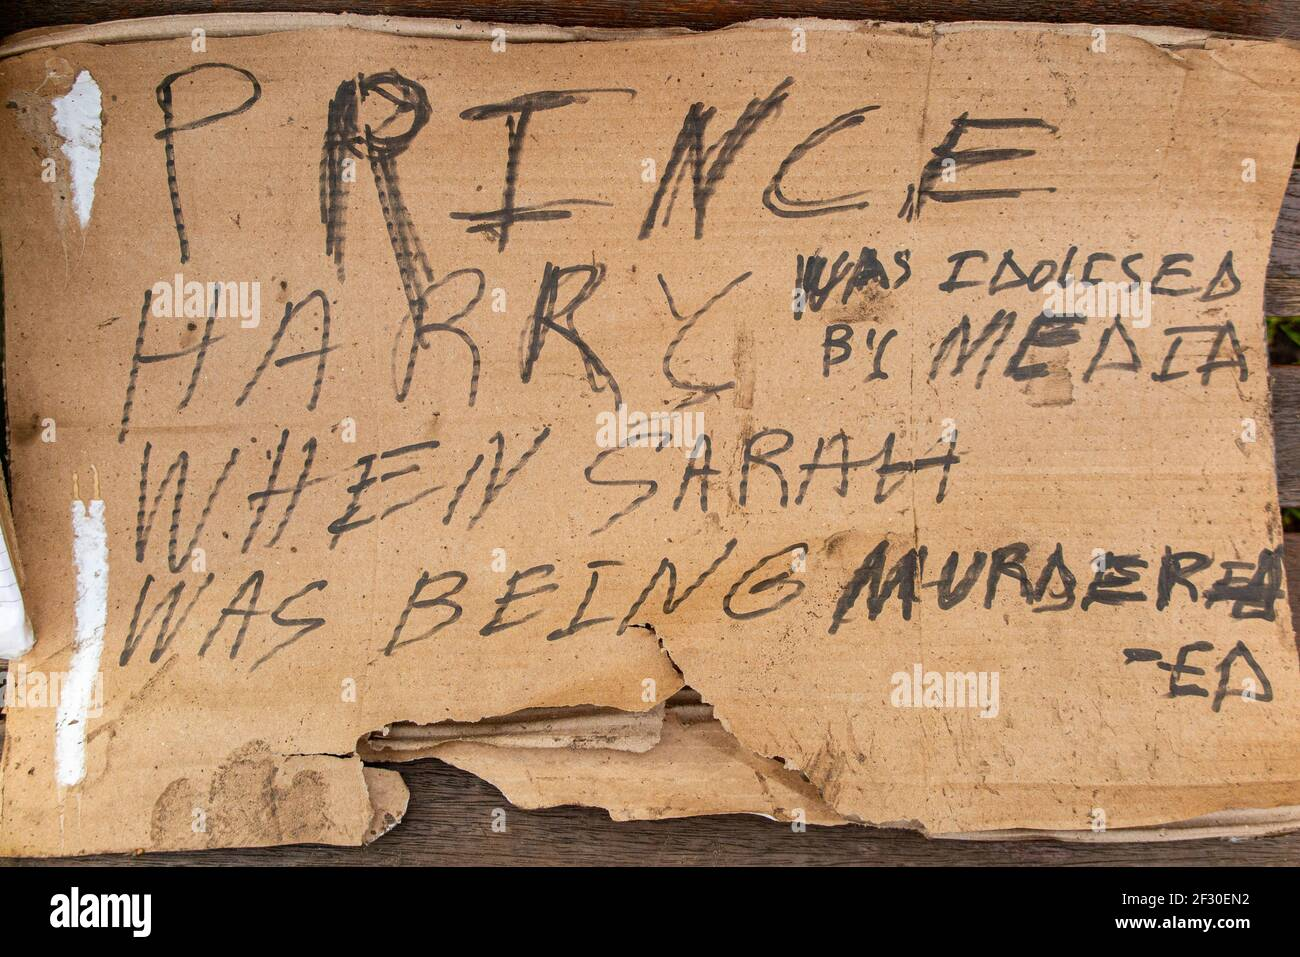 14th March 2021 - a placard about Prince Harry references Sarah Everard on Clapham Common, the day after the cancelled vigil Stock Photo